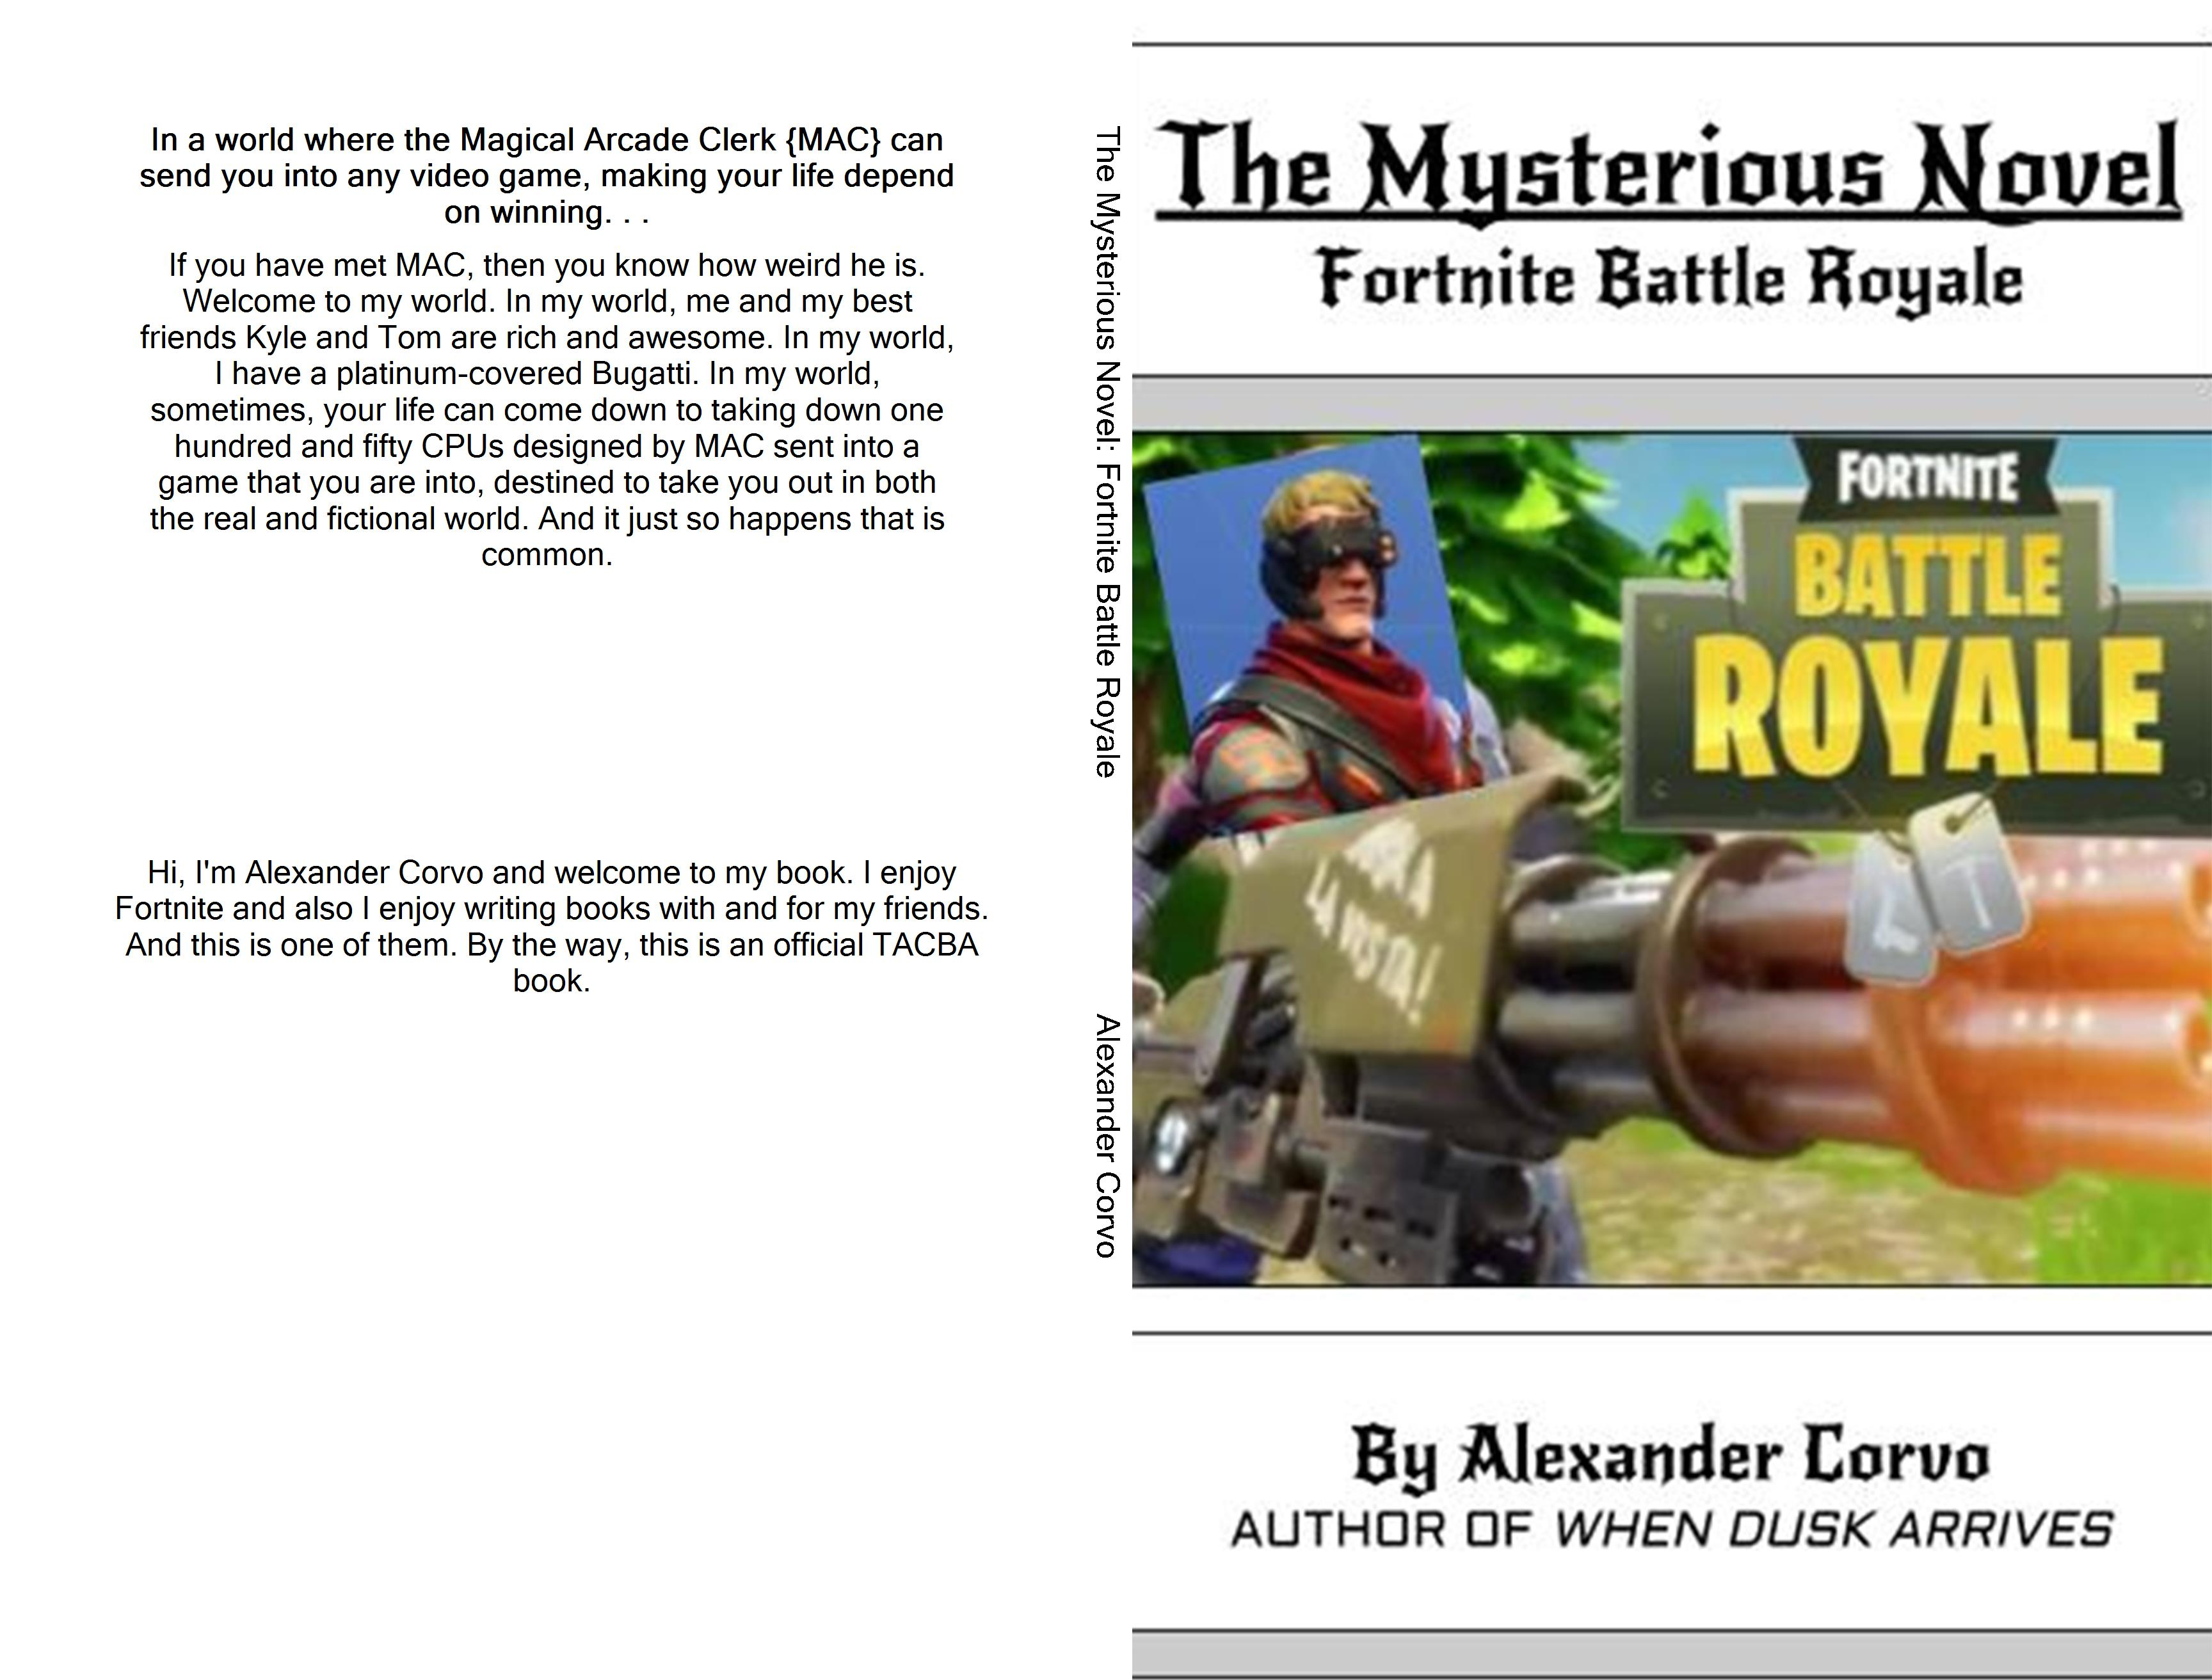 The Mysterious Novel: Fortnite Battle Royale cover image